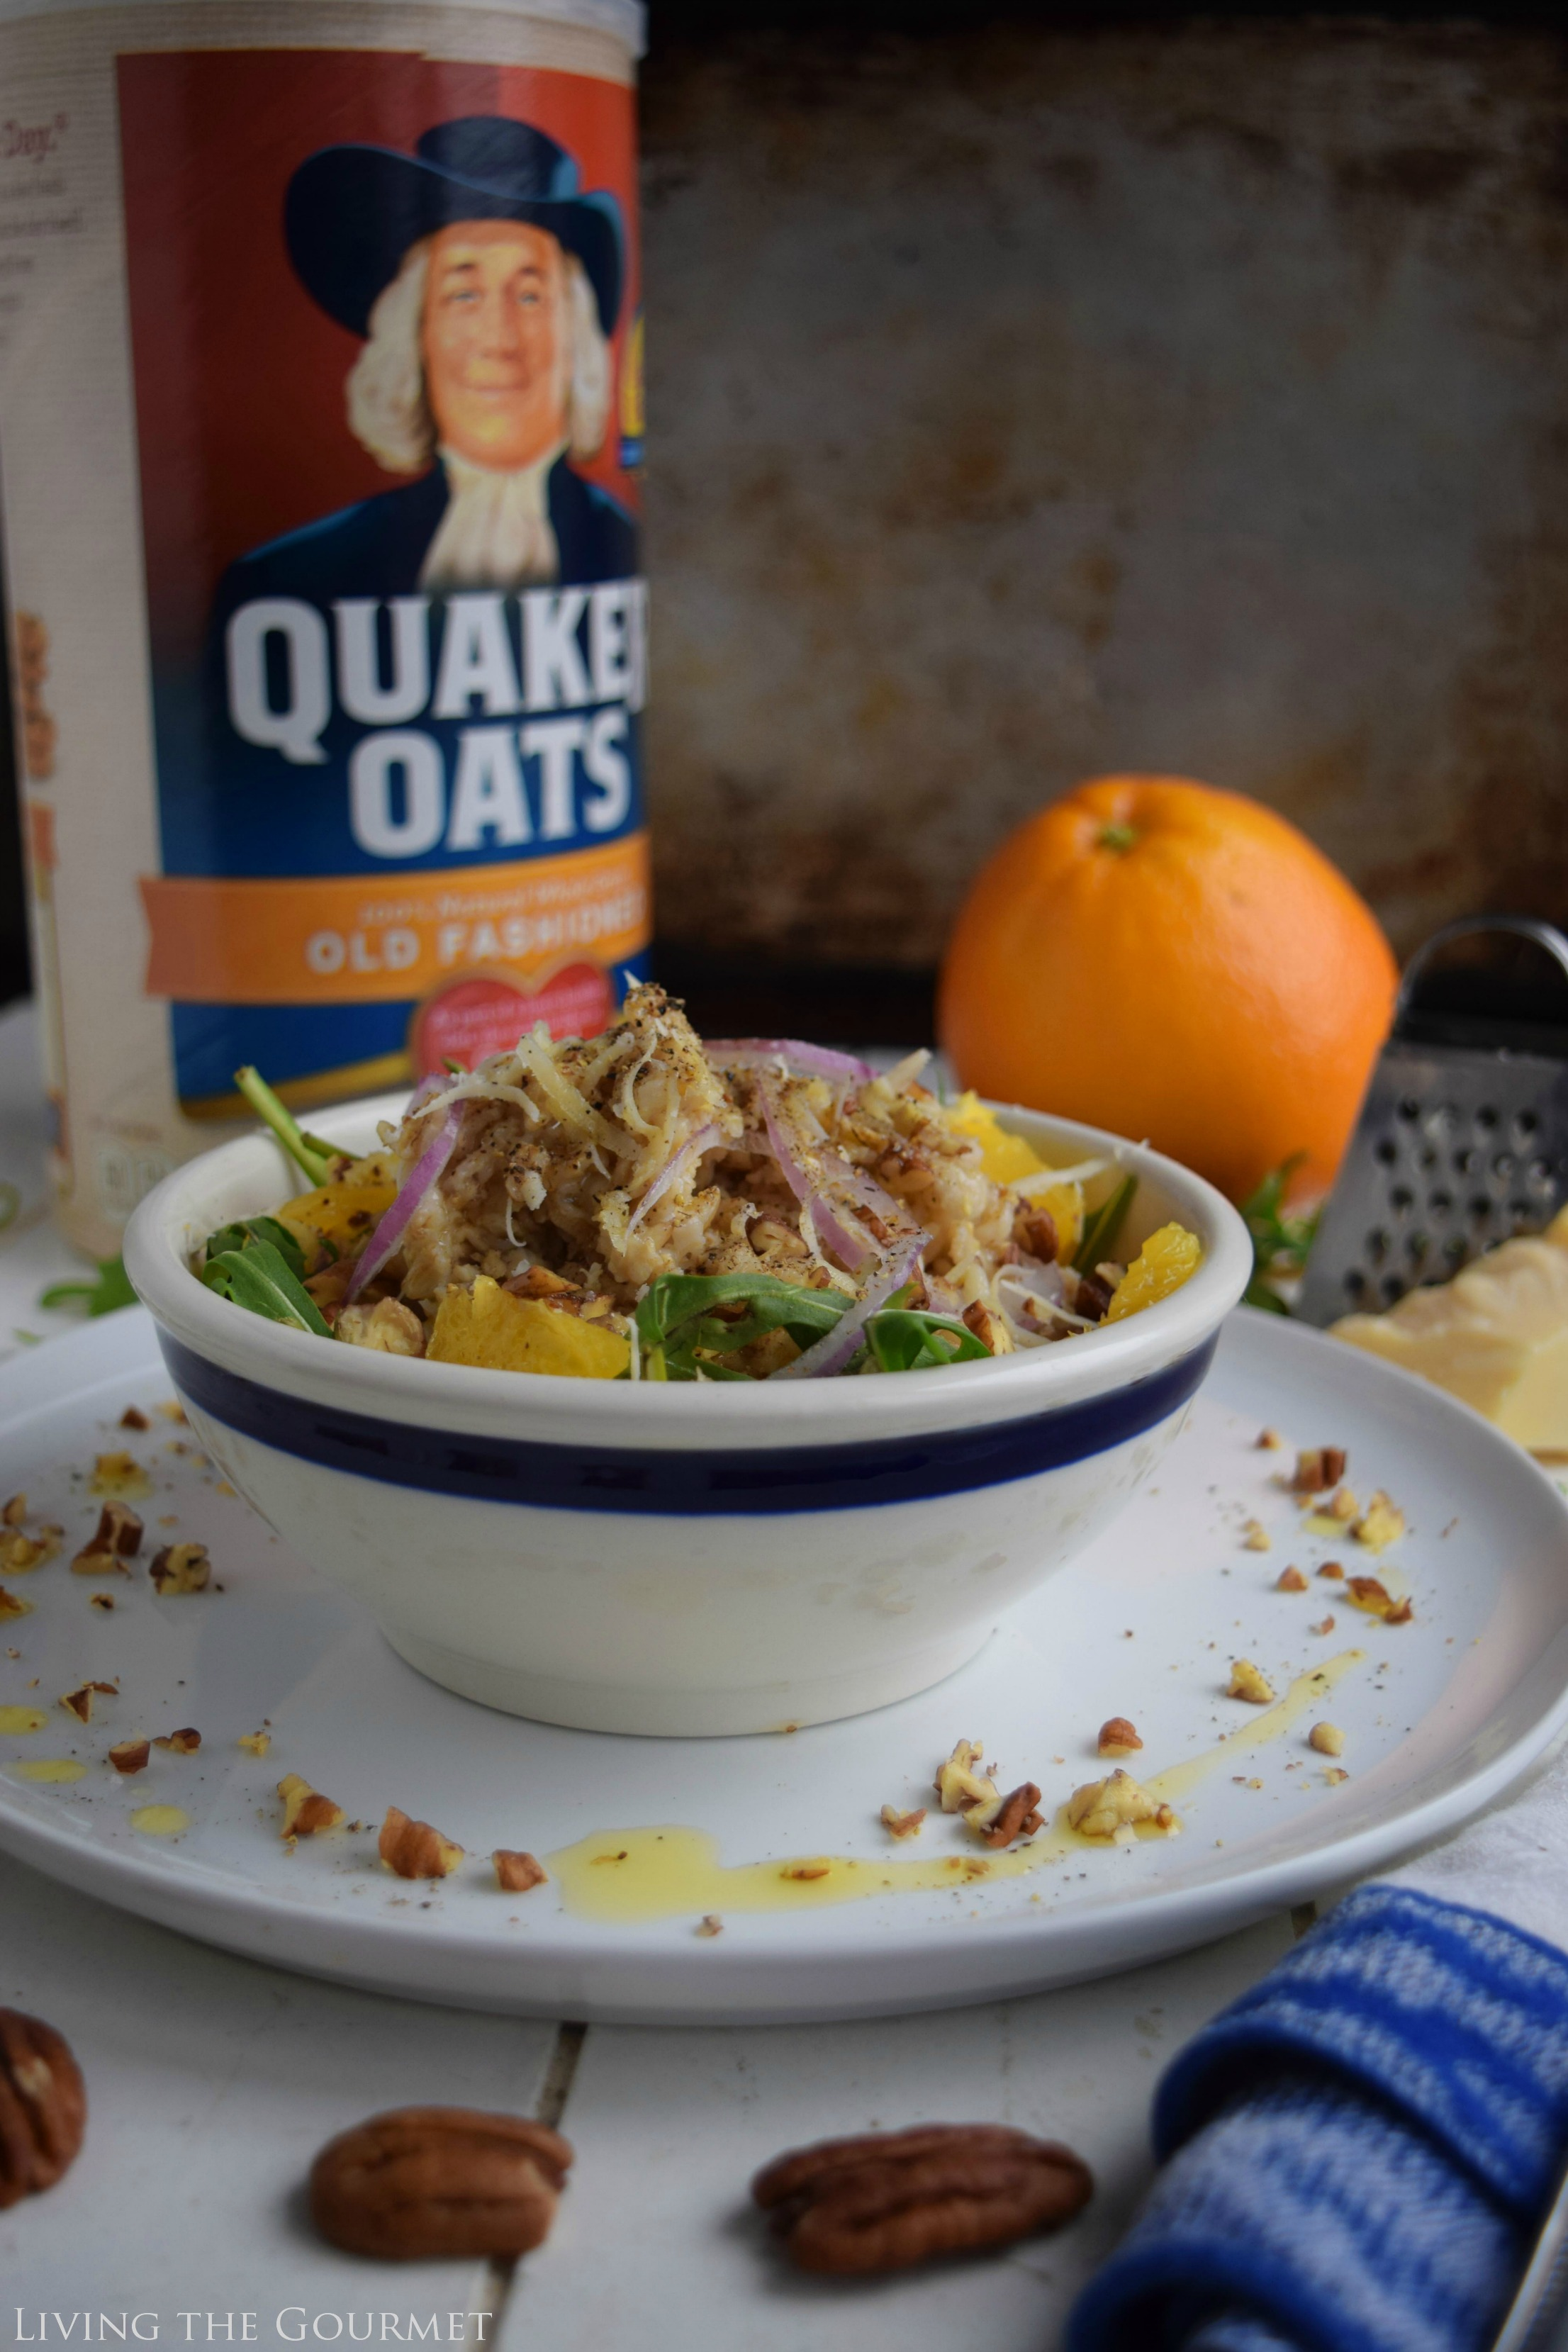 Living the Gourmet: Savory Oatmeal with Salad Greens | #BringYourBestBowl #Walmart